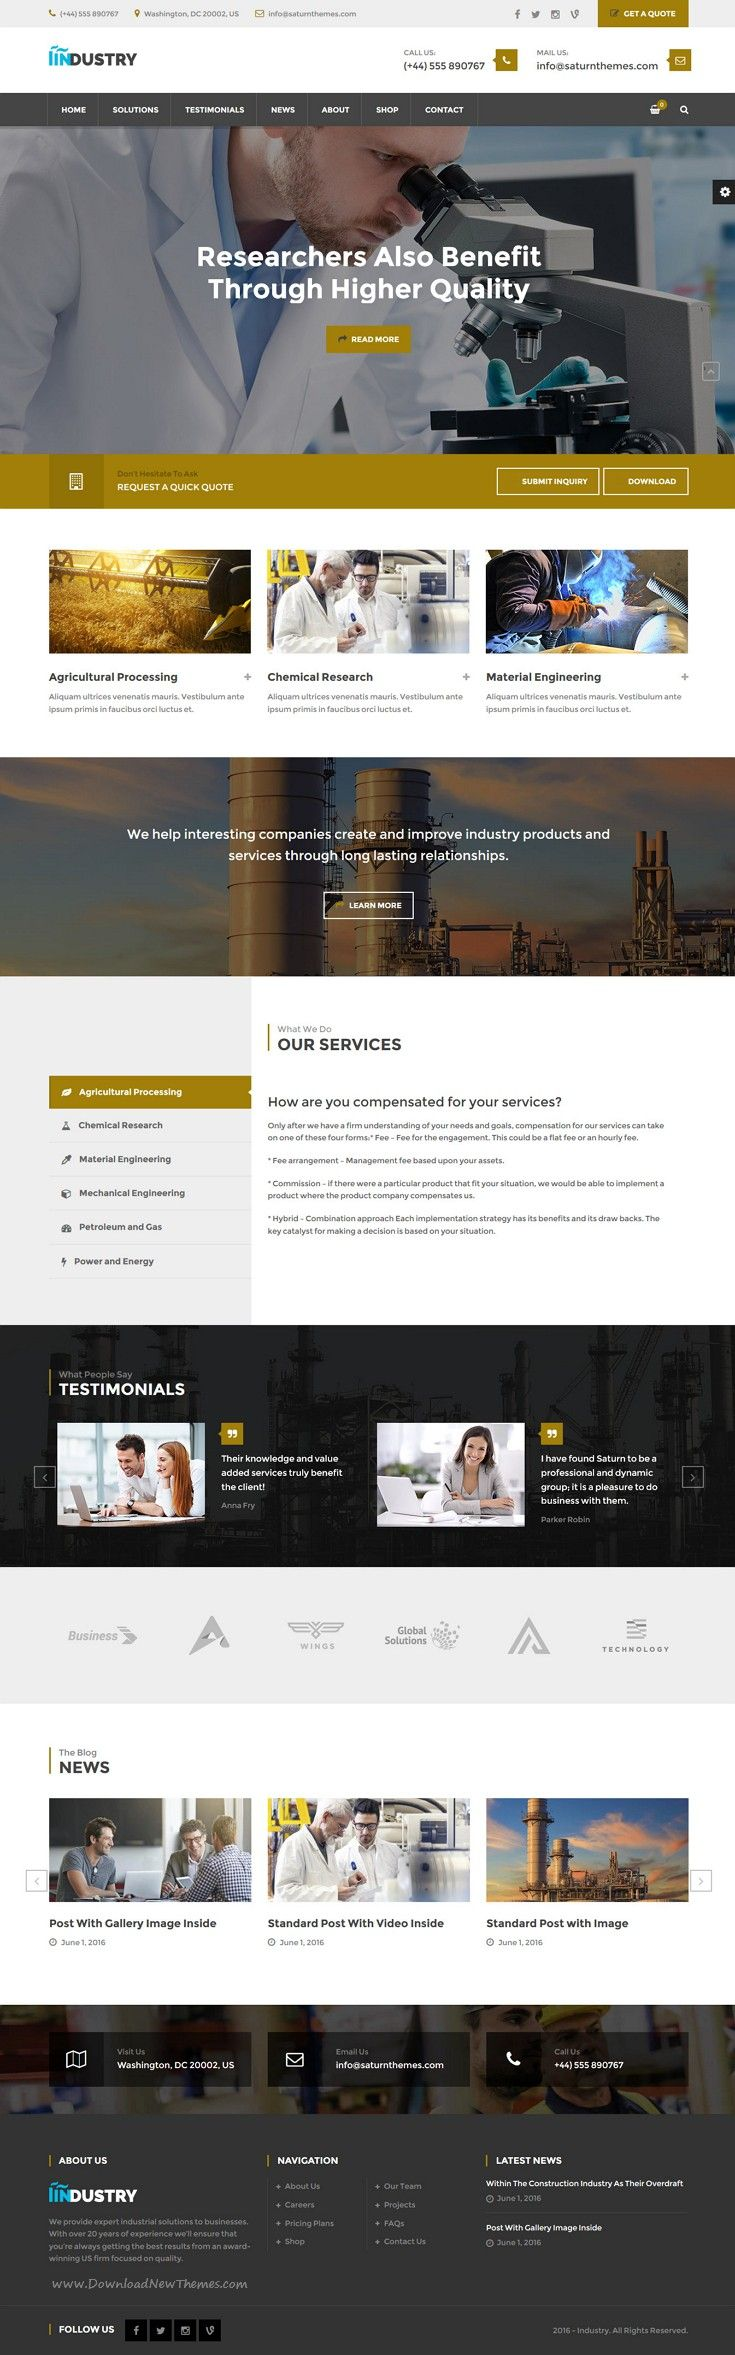 Industry is an absolutely unique WordPress theme for #industrial, factory or manufacturing #company #website. Download Now!